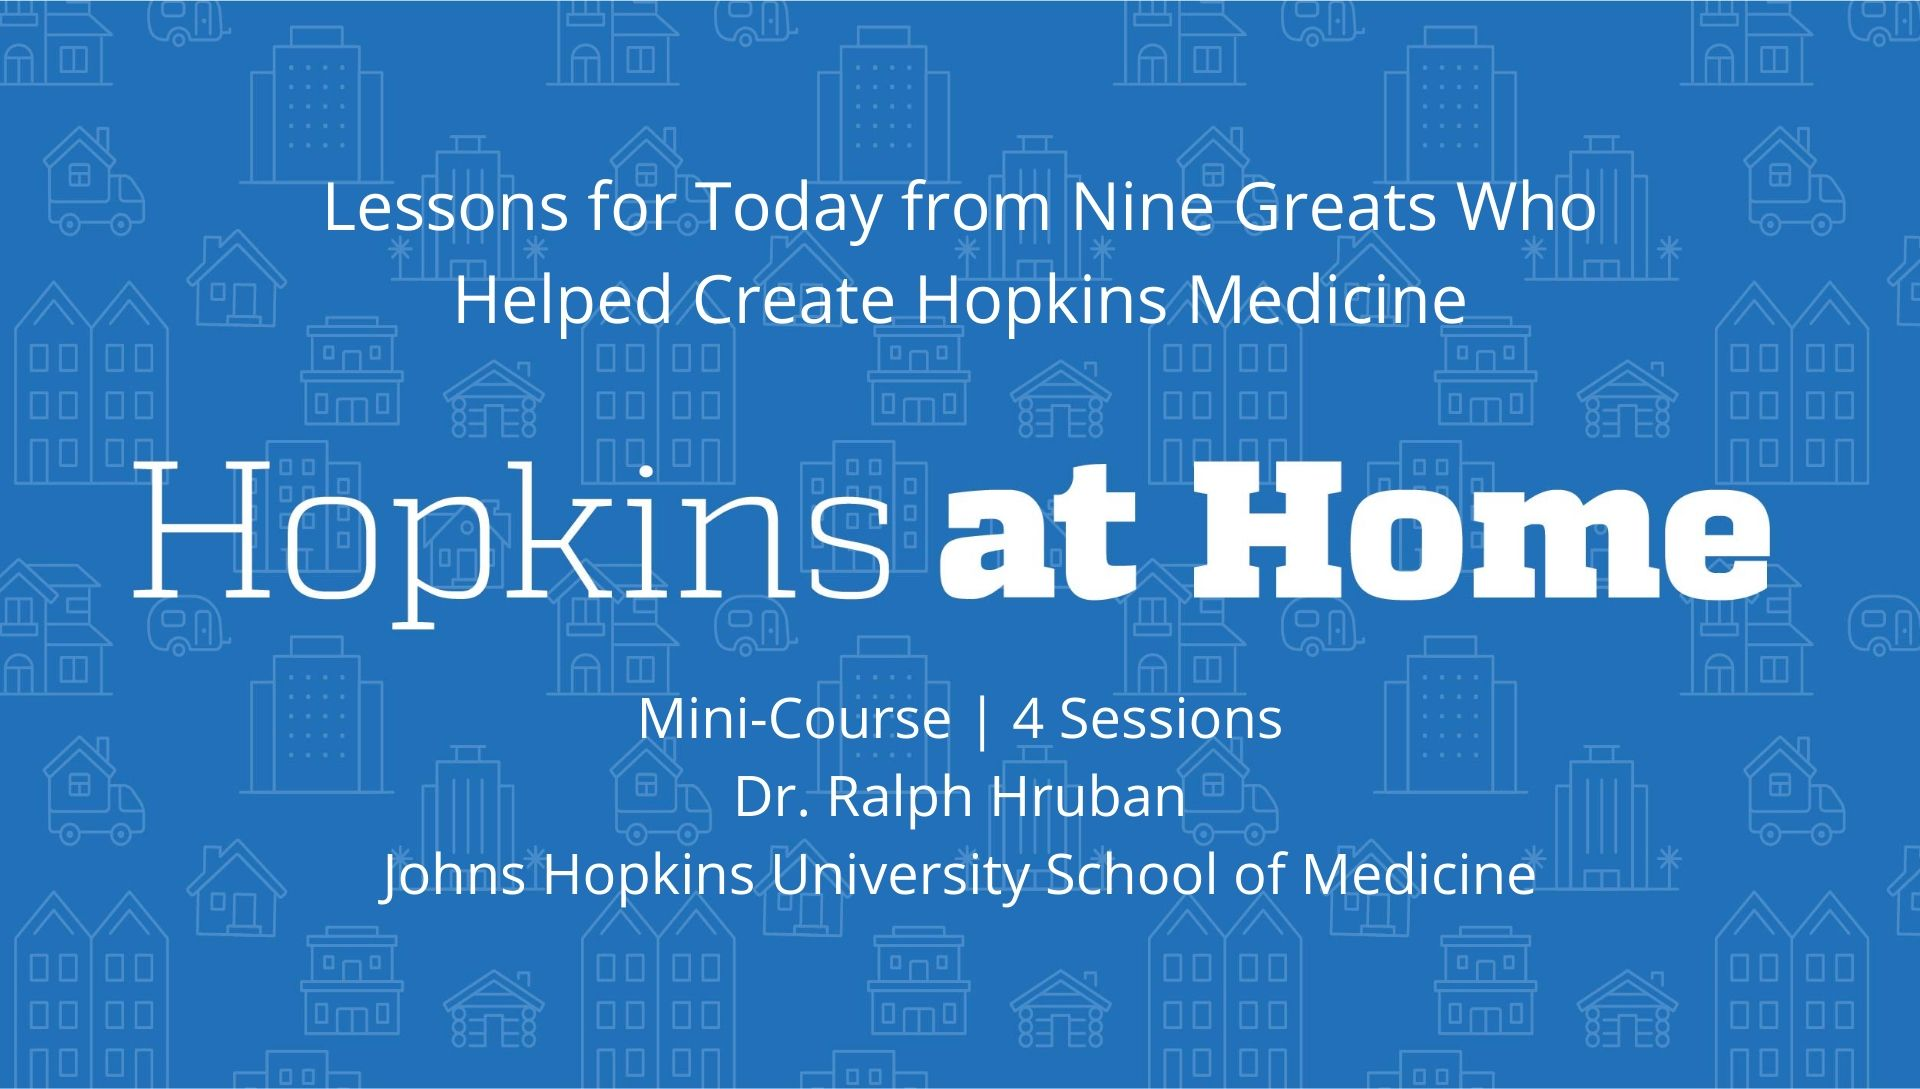 Lessons for Today from Nine Greats Who Helped Create Hopkins Medicine header image